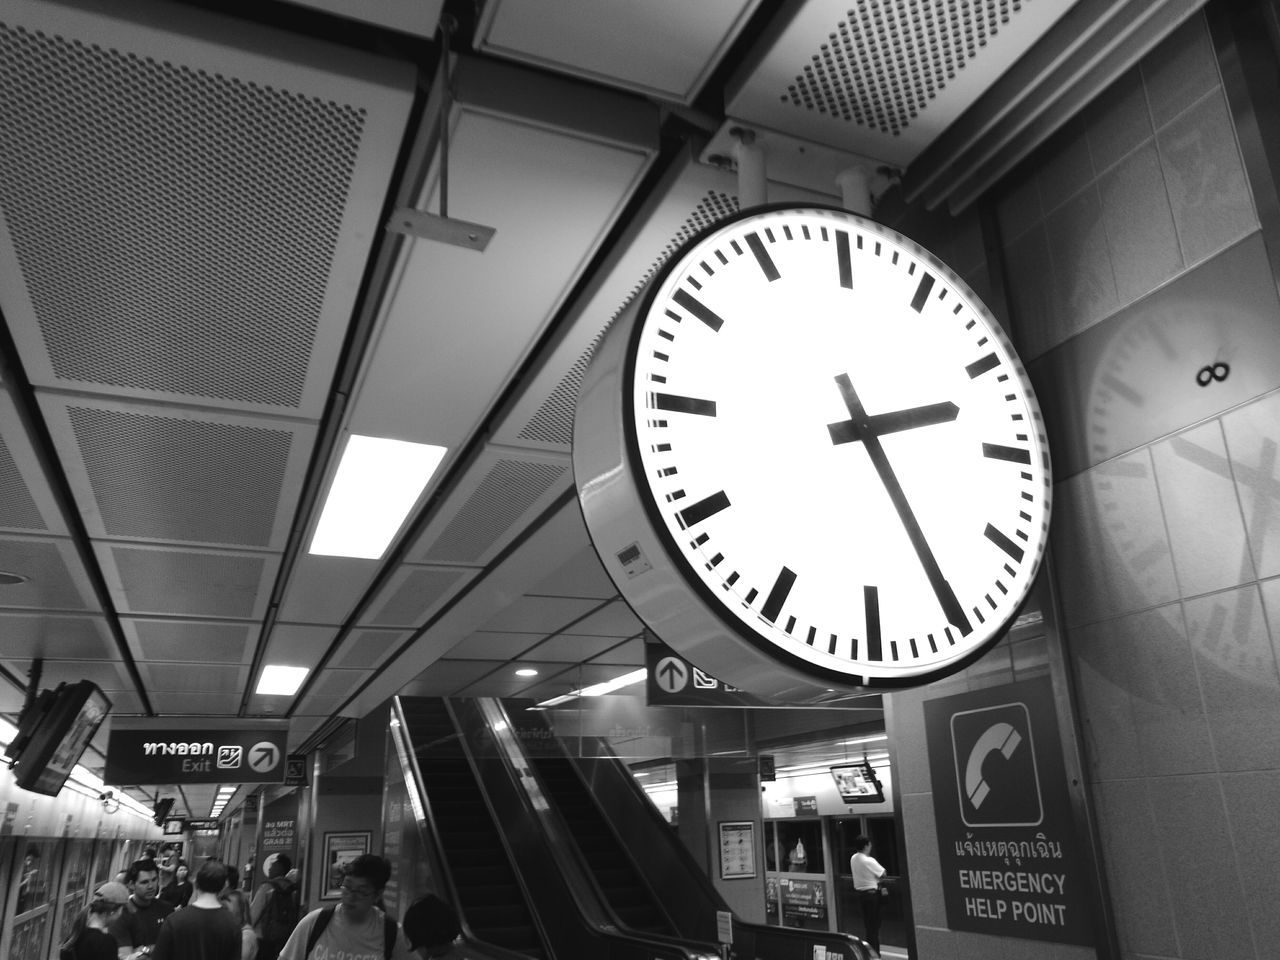 Clock Railroad Station Railroad Station Platform Minute Hand Clock Face Blackandwhite Monochrome Black And White Monochrome Photography Outdoors Time Low Angle View Day City Moments Of Life HuaweiP9 Leica Black And White